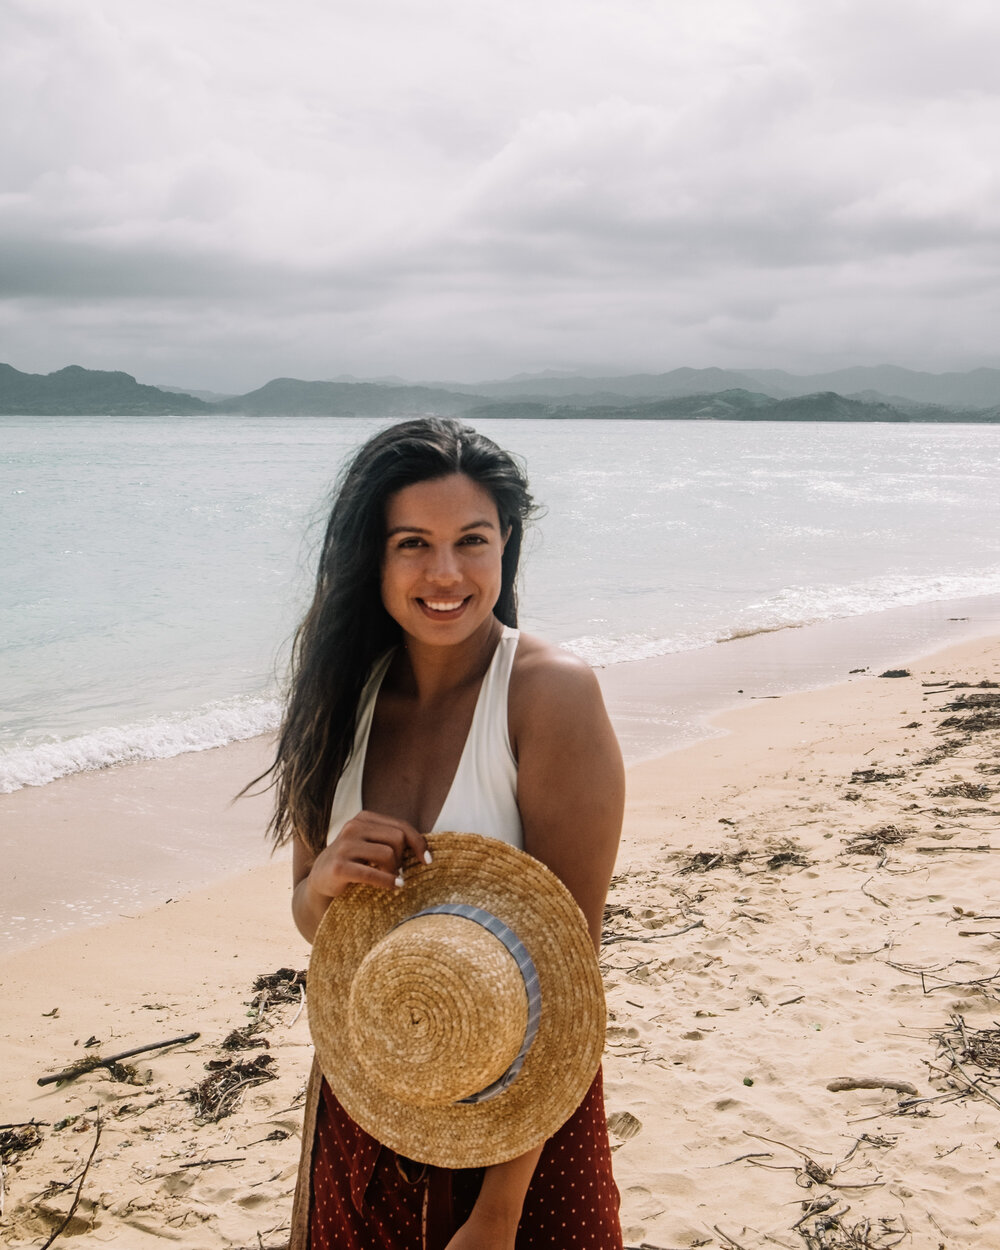 Rachel Off Duty: Woman Posing for Photo in Caramoan, Philippines